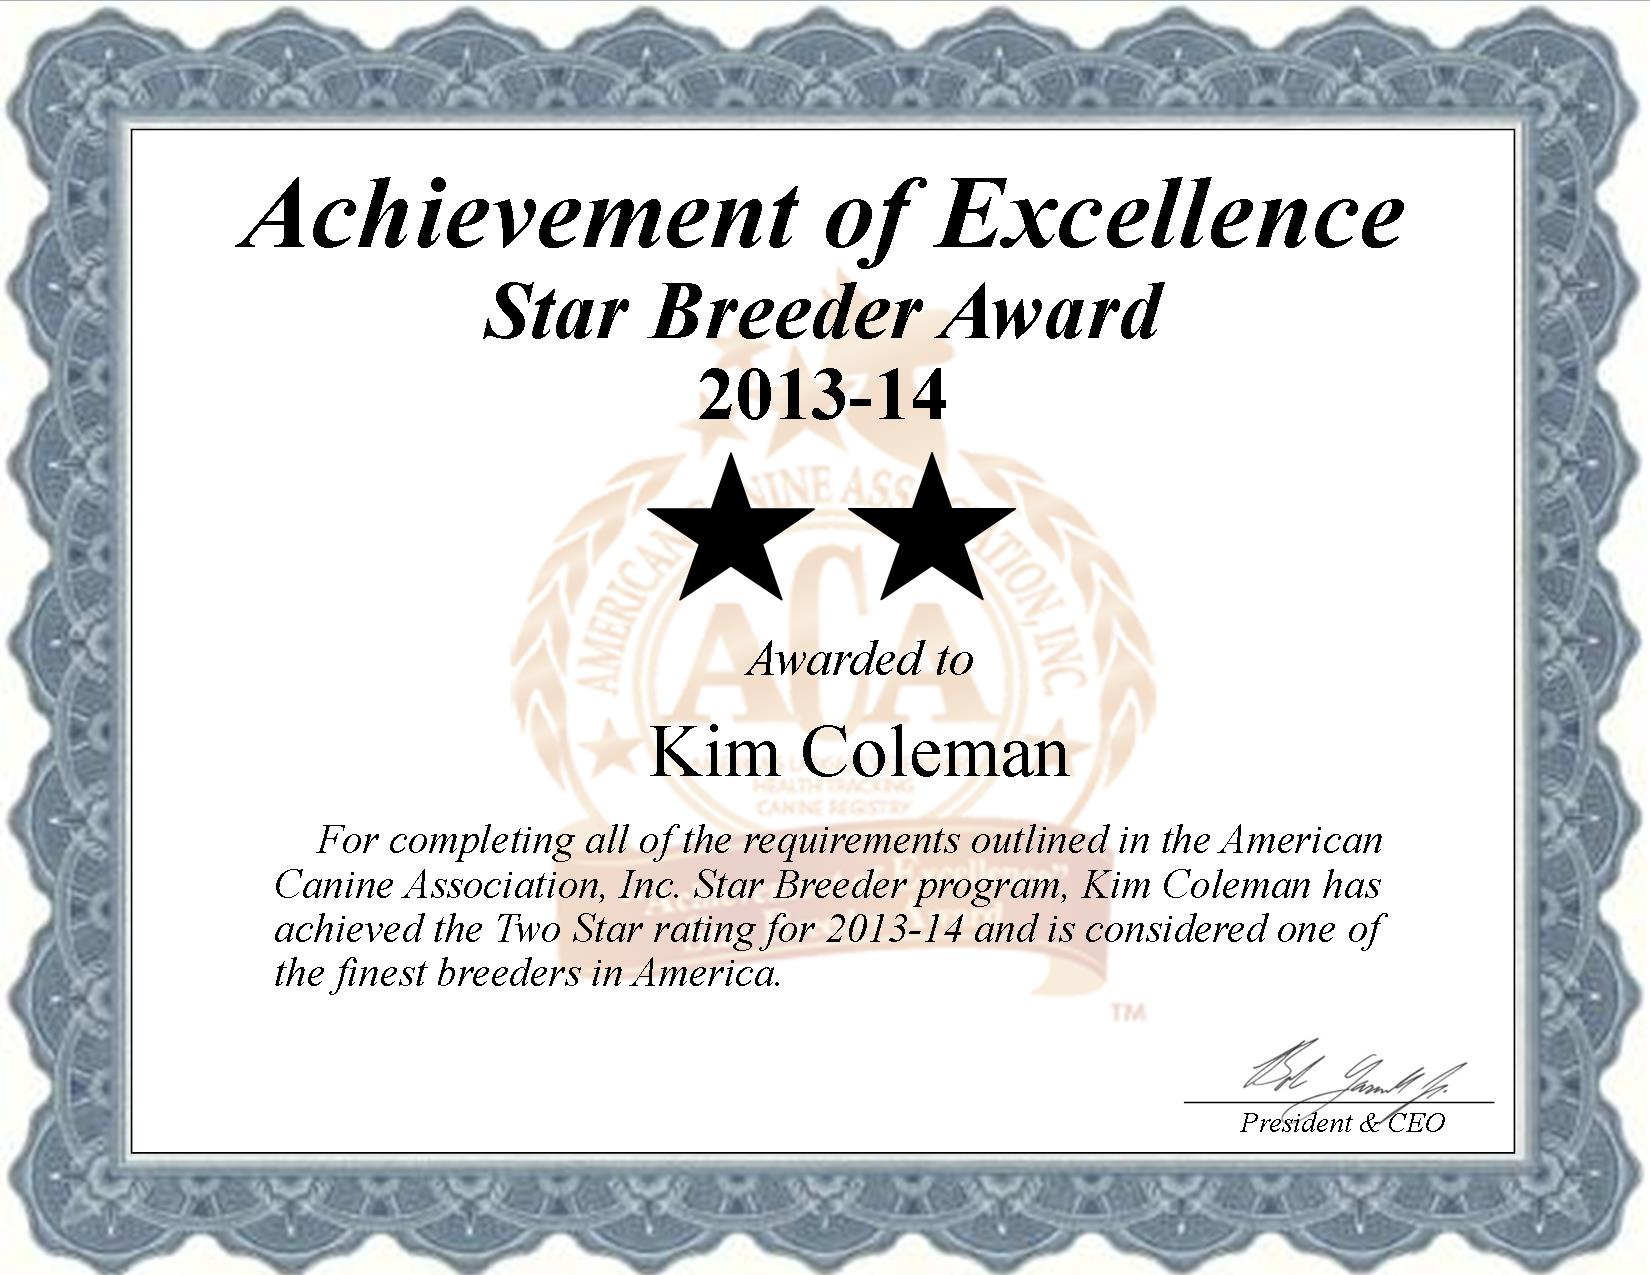 Kim Coleman, Coleman Kennel, Coleman dog breeder, star breeder, aca, star breeder, 2 star, kimberly, Backus, Minnesota, MN, dog, puppy, puppies, dog breeder, dog breeders, Minnesota breeder, Kim Coleman dog breeder